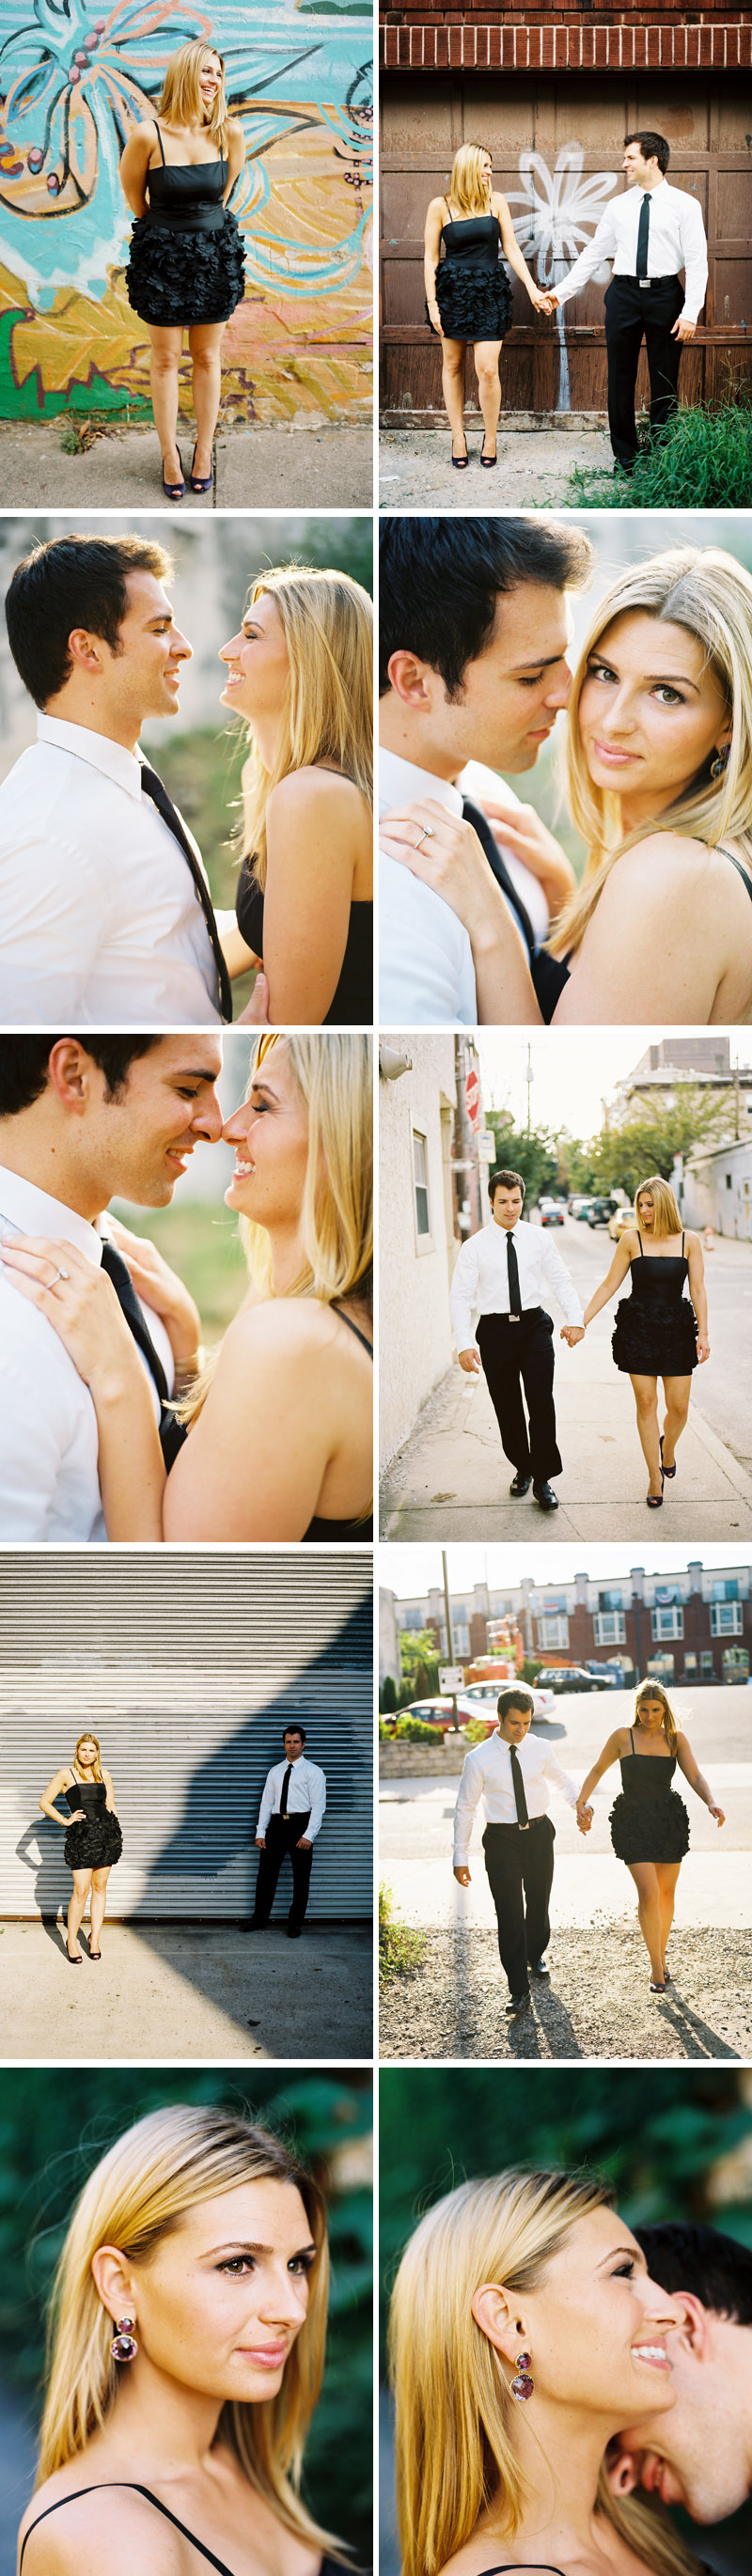 engagement session in philadelphia by ash imagery